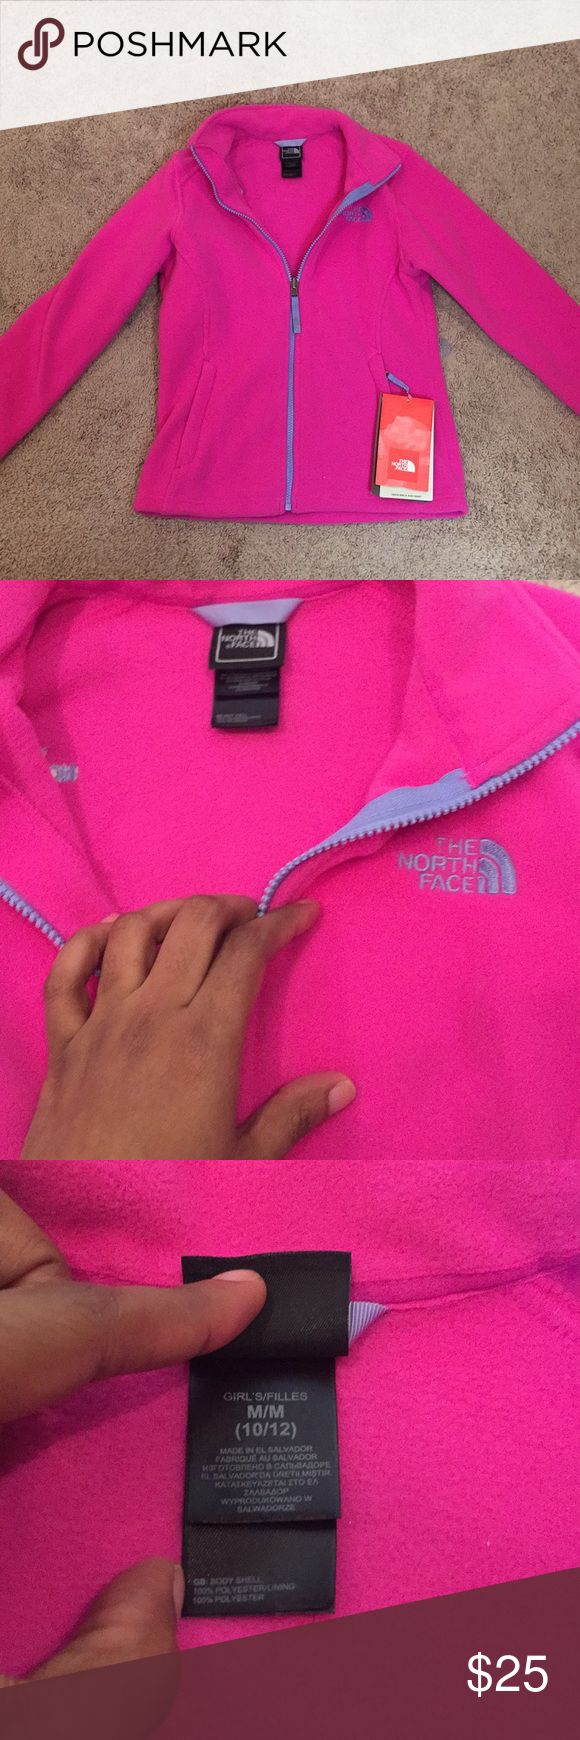 Girls North Face Azalea Pink Fleece NWT Never worn fleece medium size 10/12. Such a pretty pink color. Perfect for winter. North Face Jackets & Coats